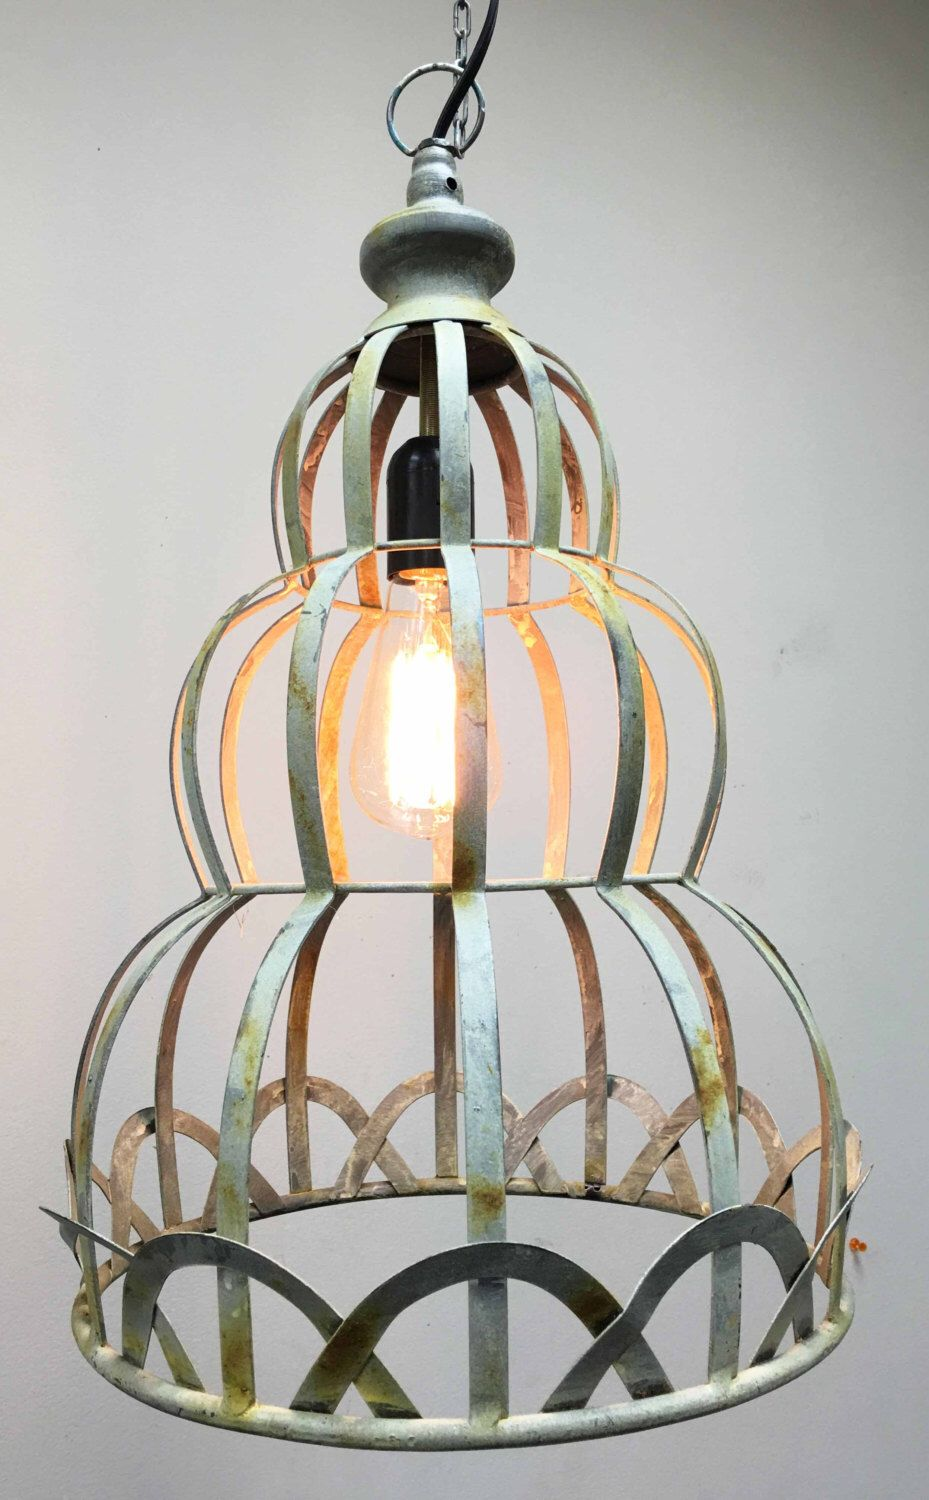 Vintage antique style rustic hanging light pendant light with